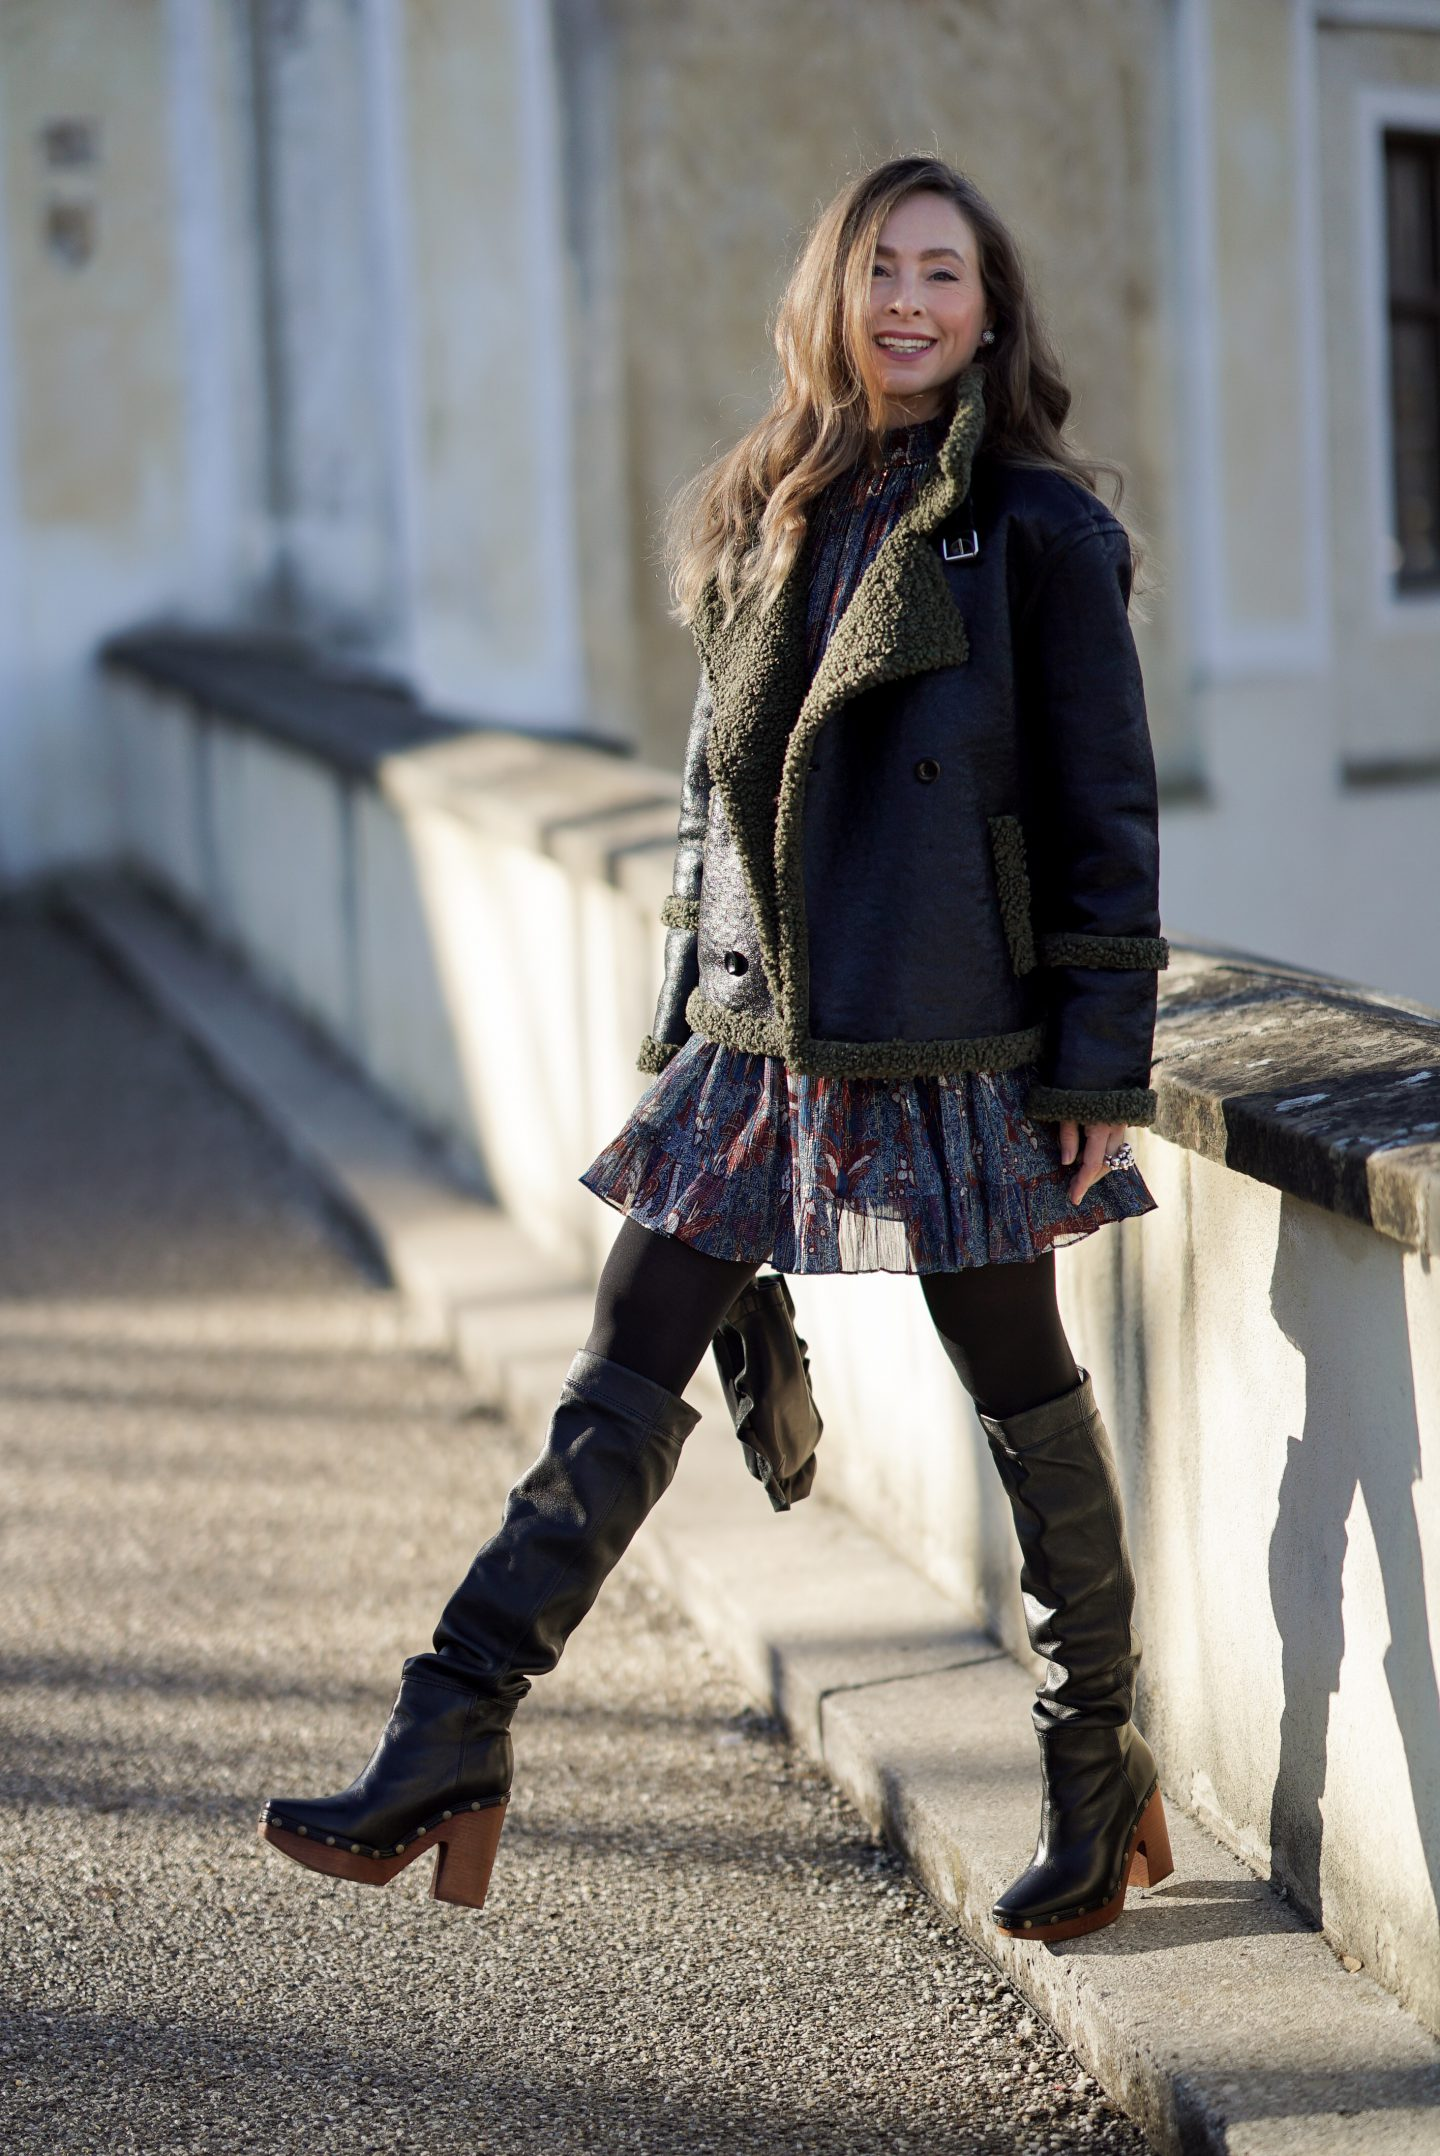 Boho Kleid im Winter stylen